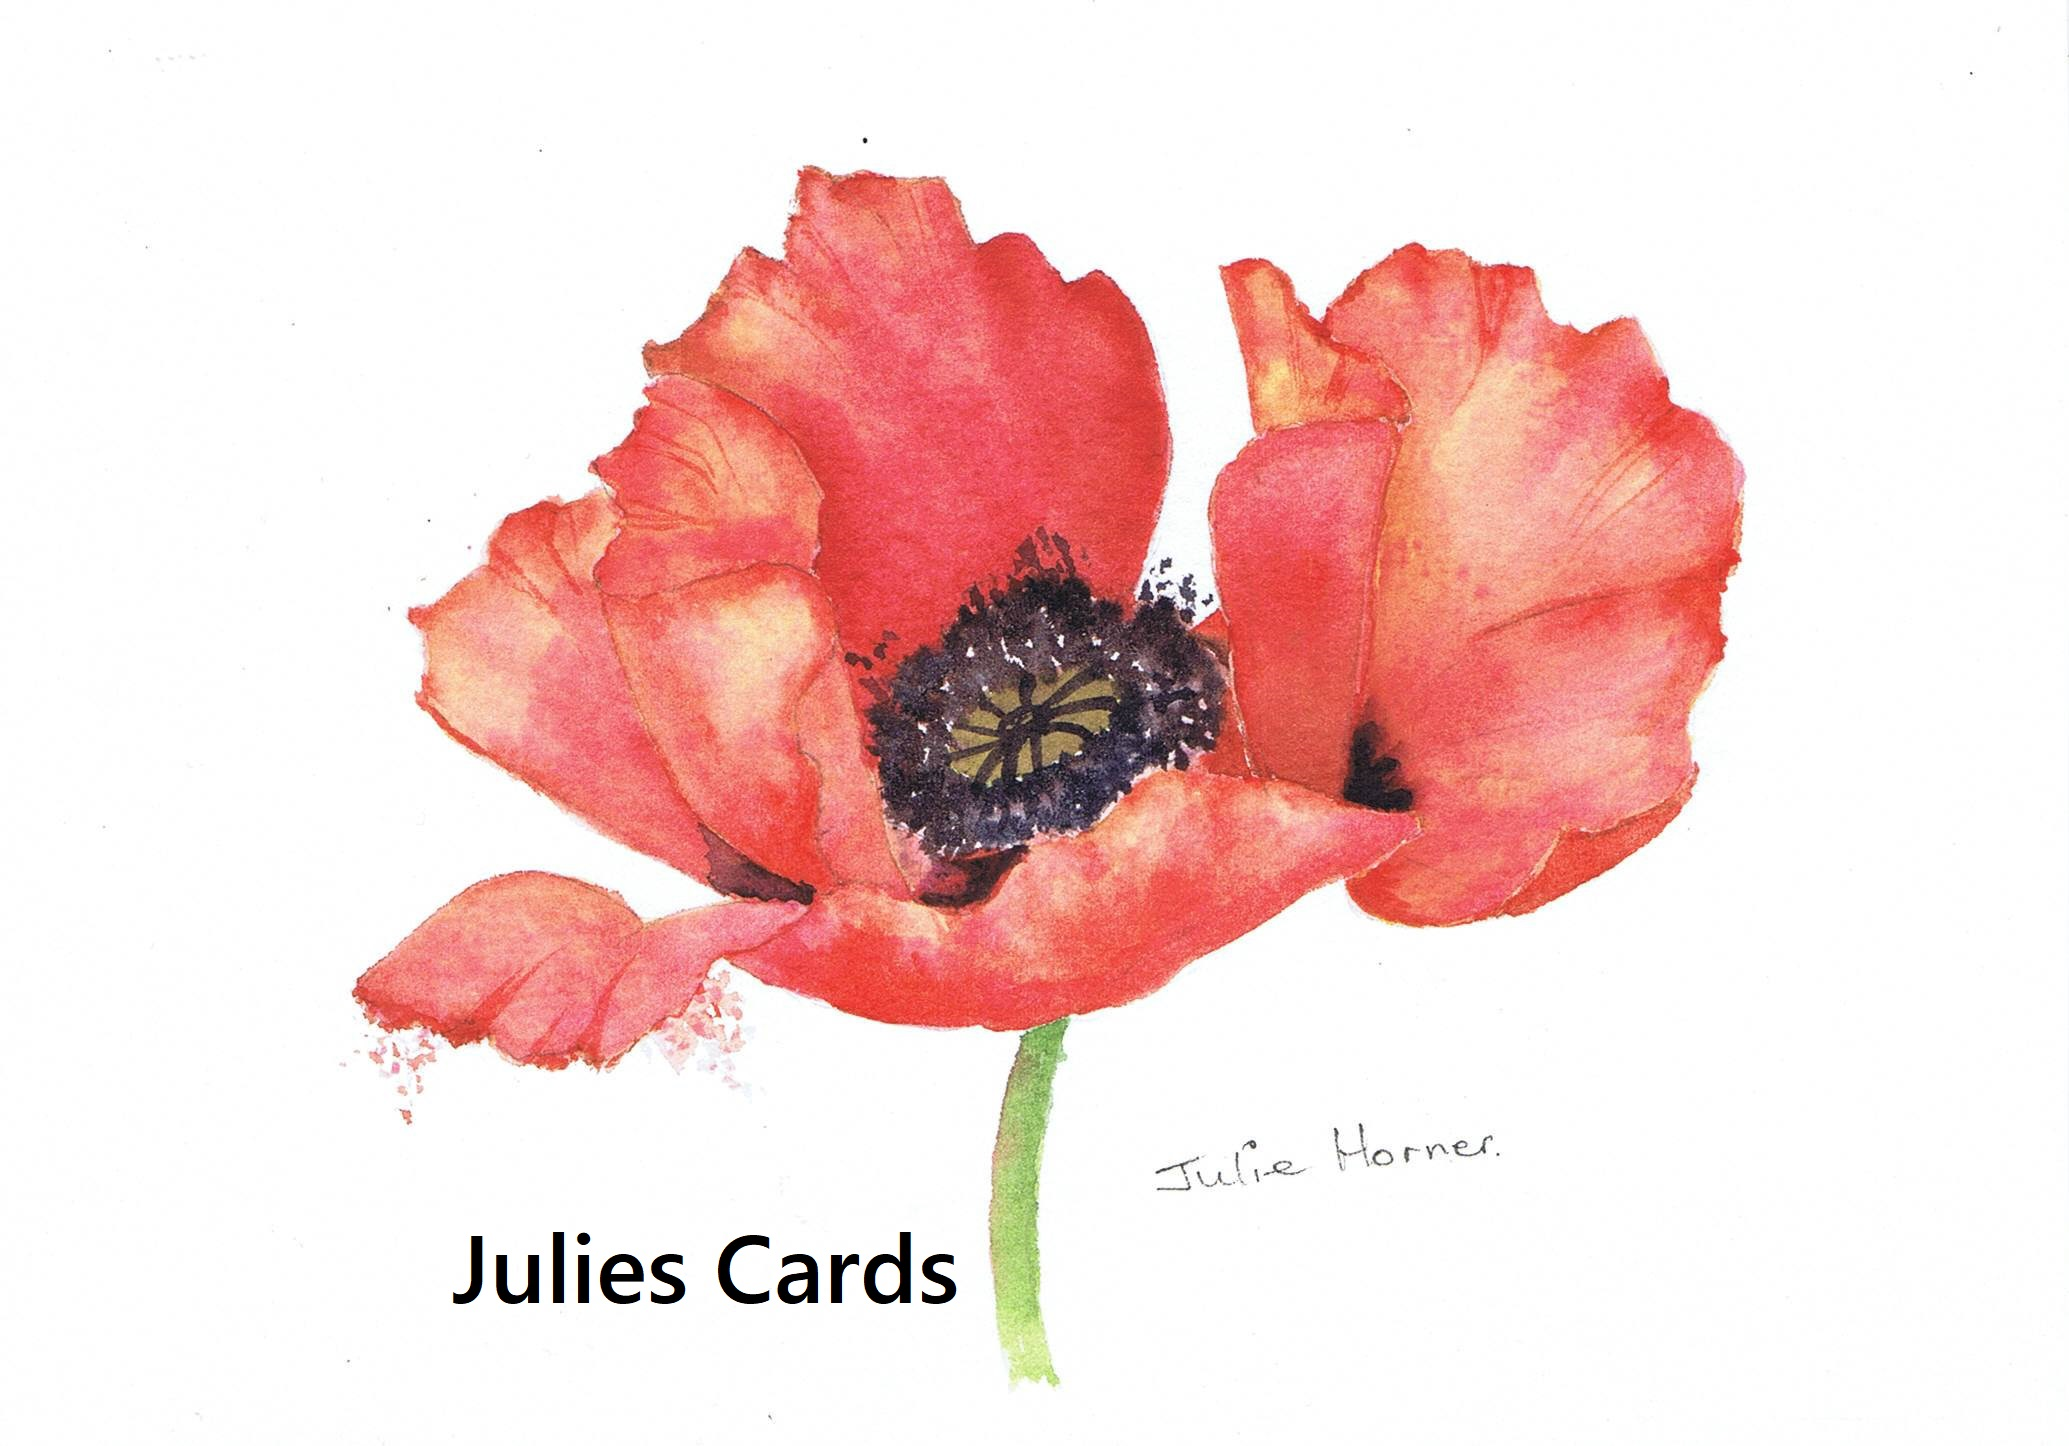 Juliescards